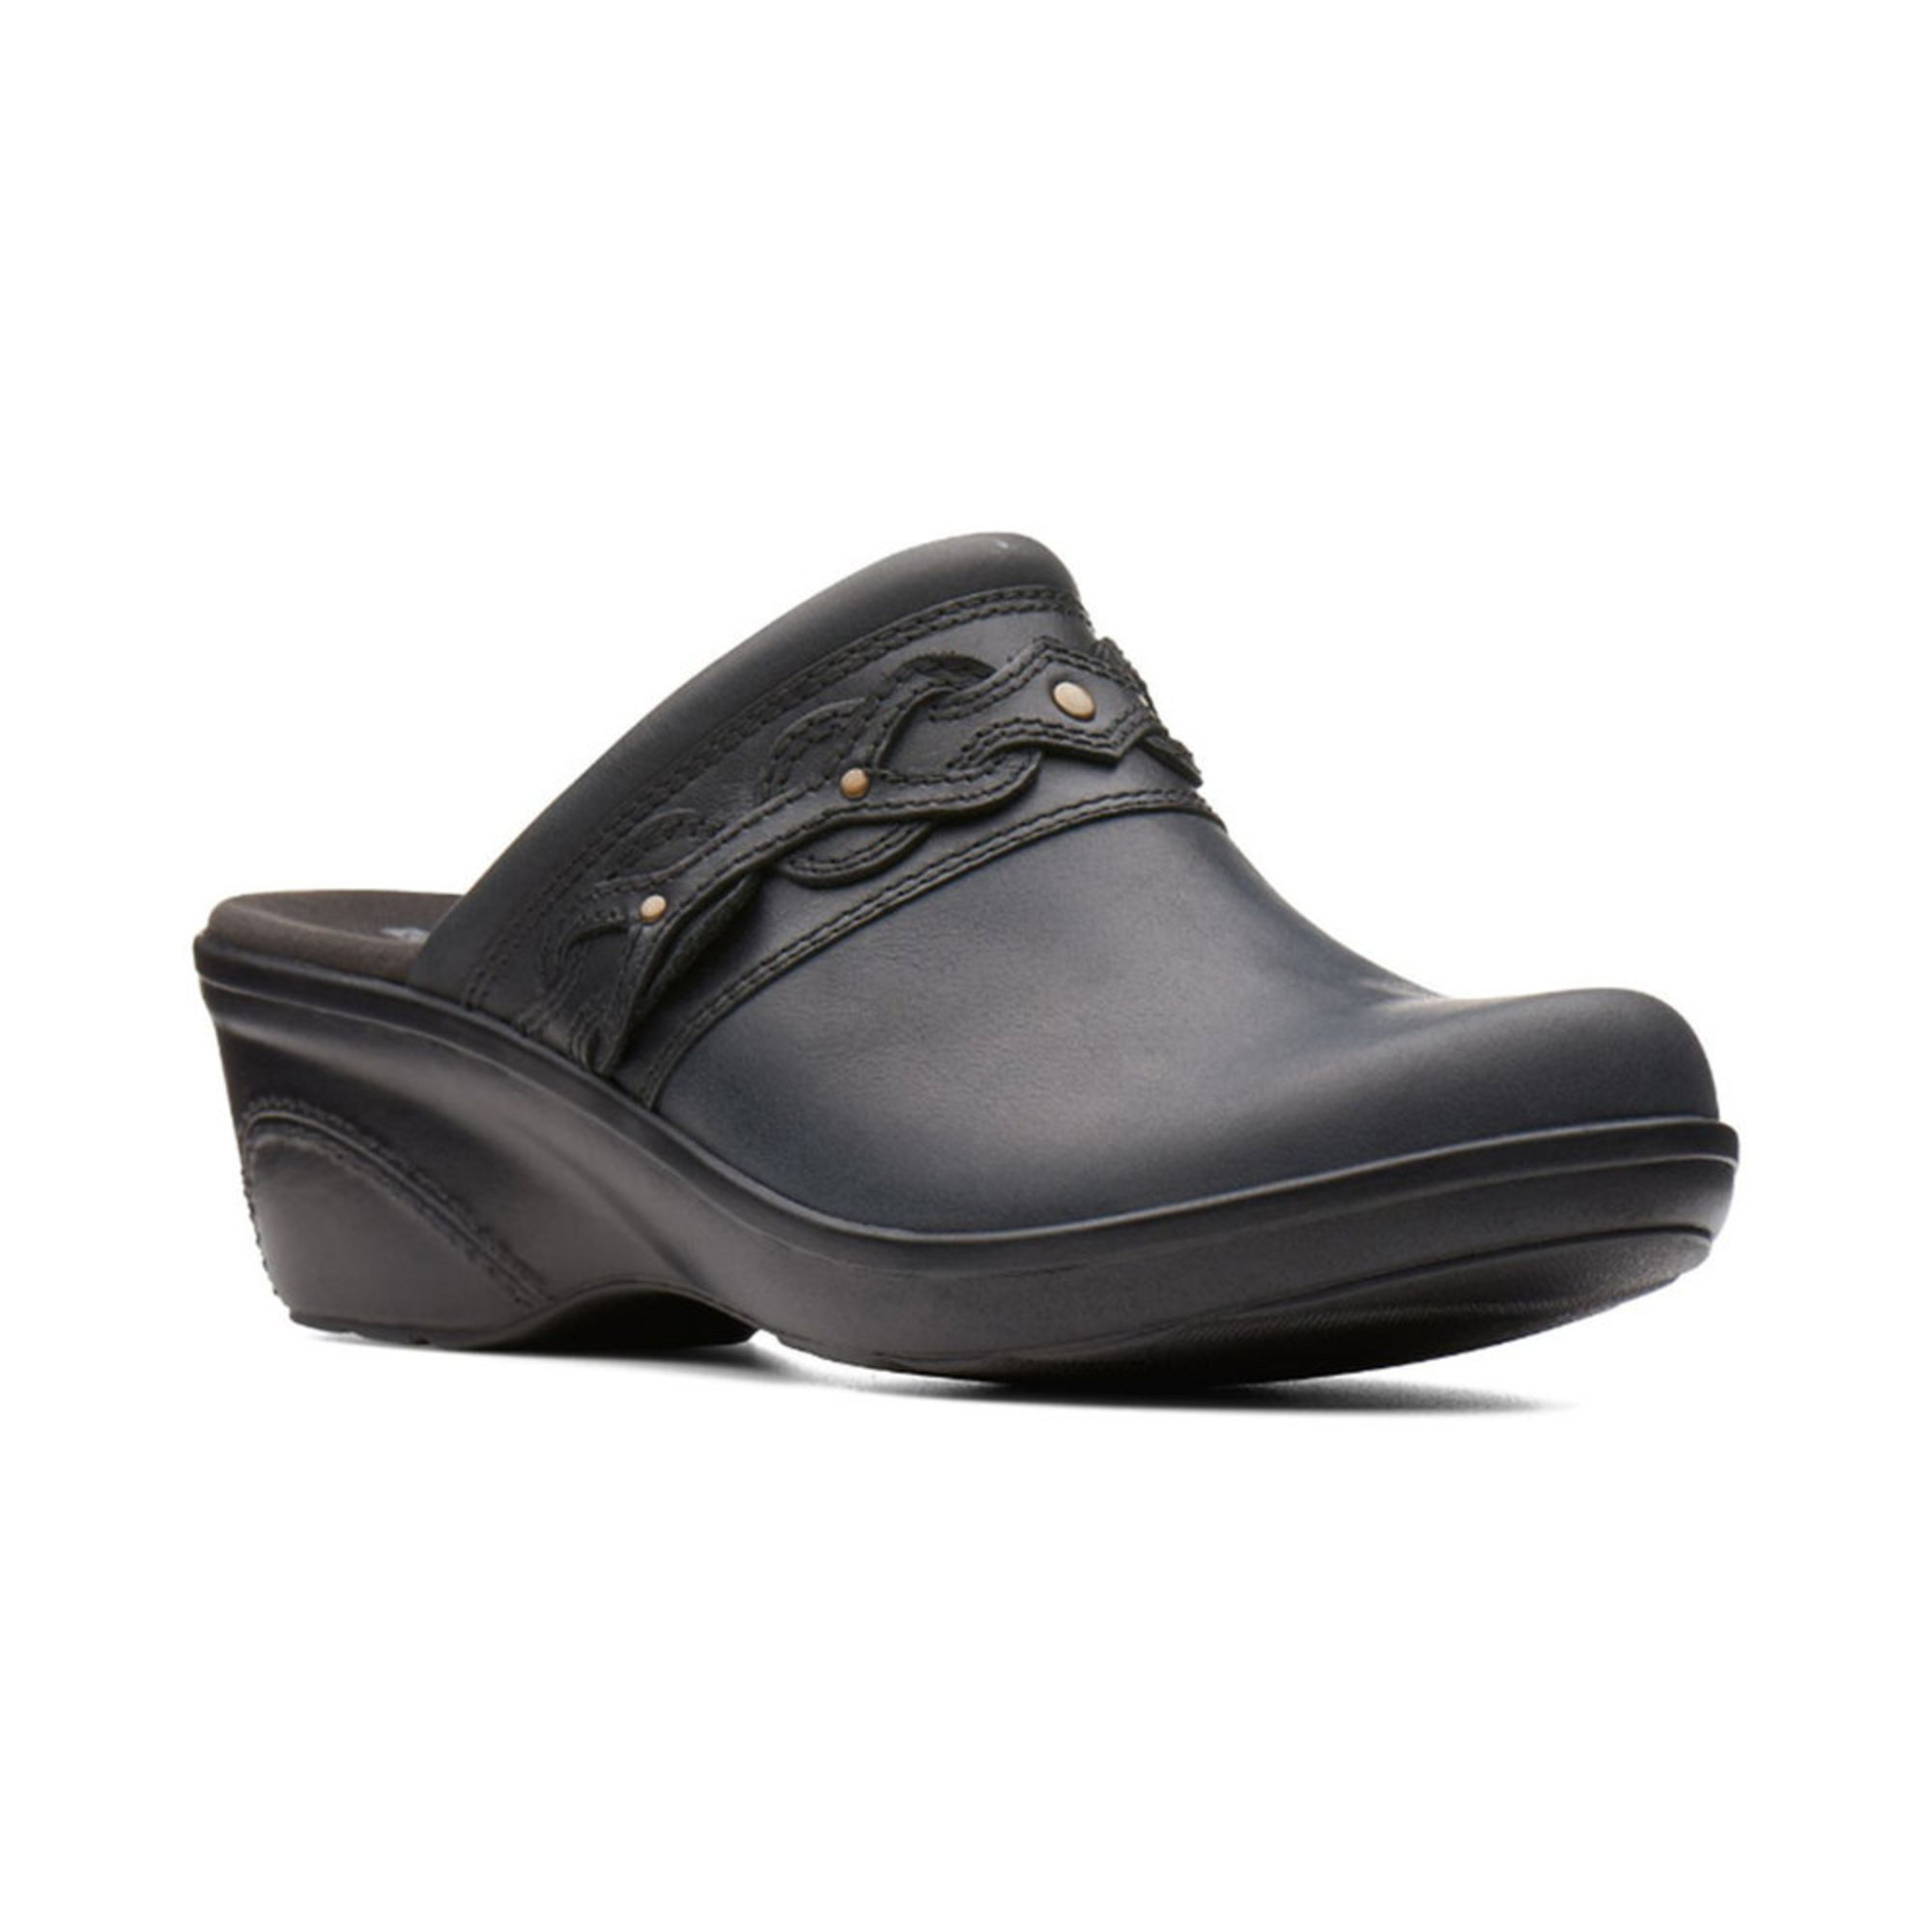 Shop For Cheap Clarks Clogs Comfort Shoes Clothing, Shoes & Accessories